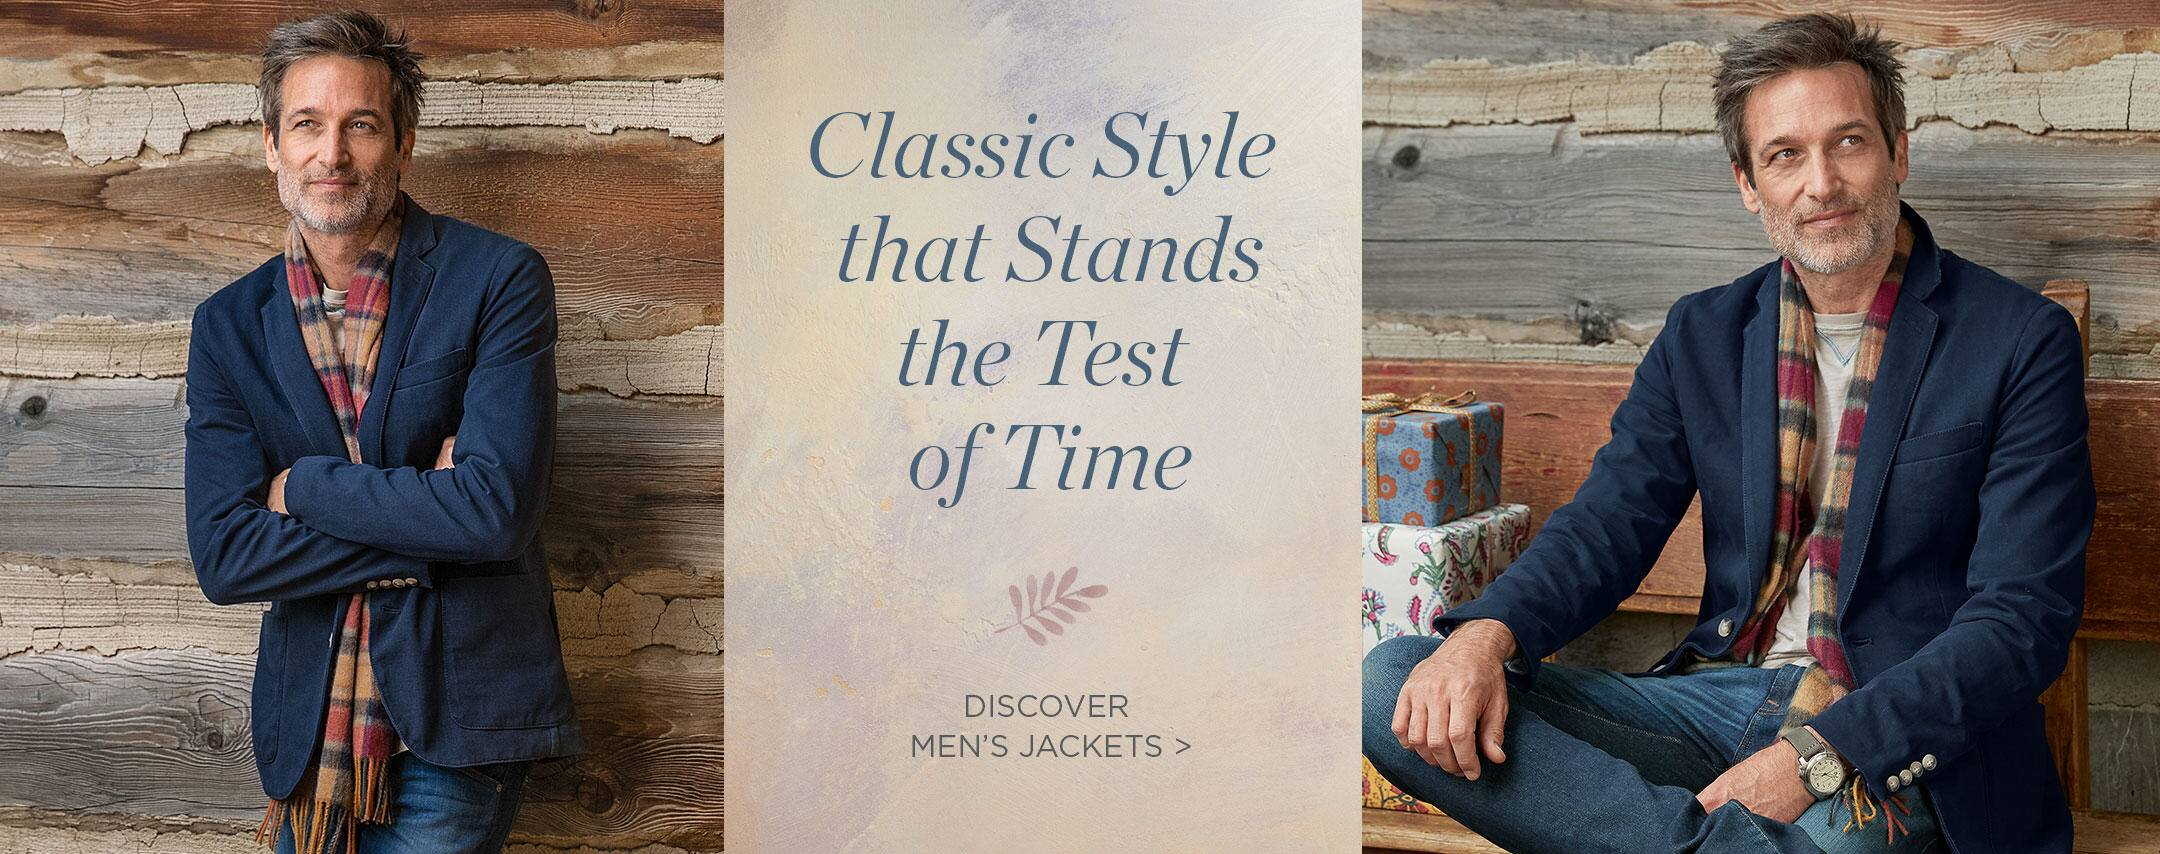 Discover Men's Jackets